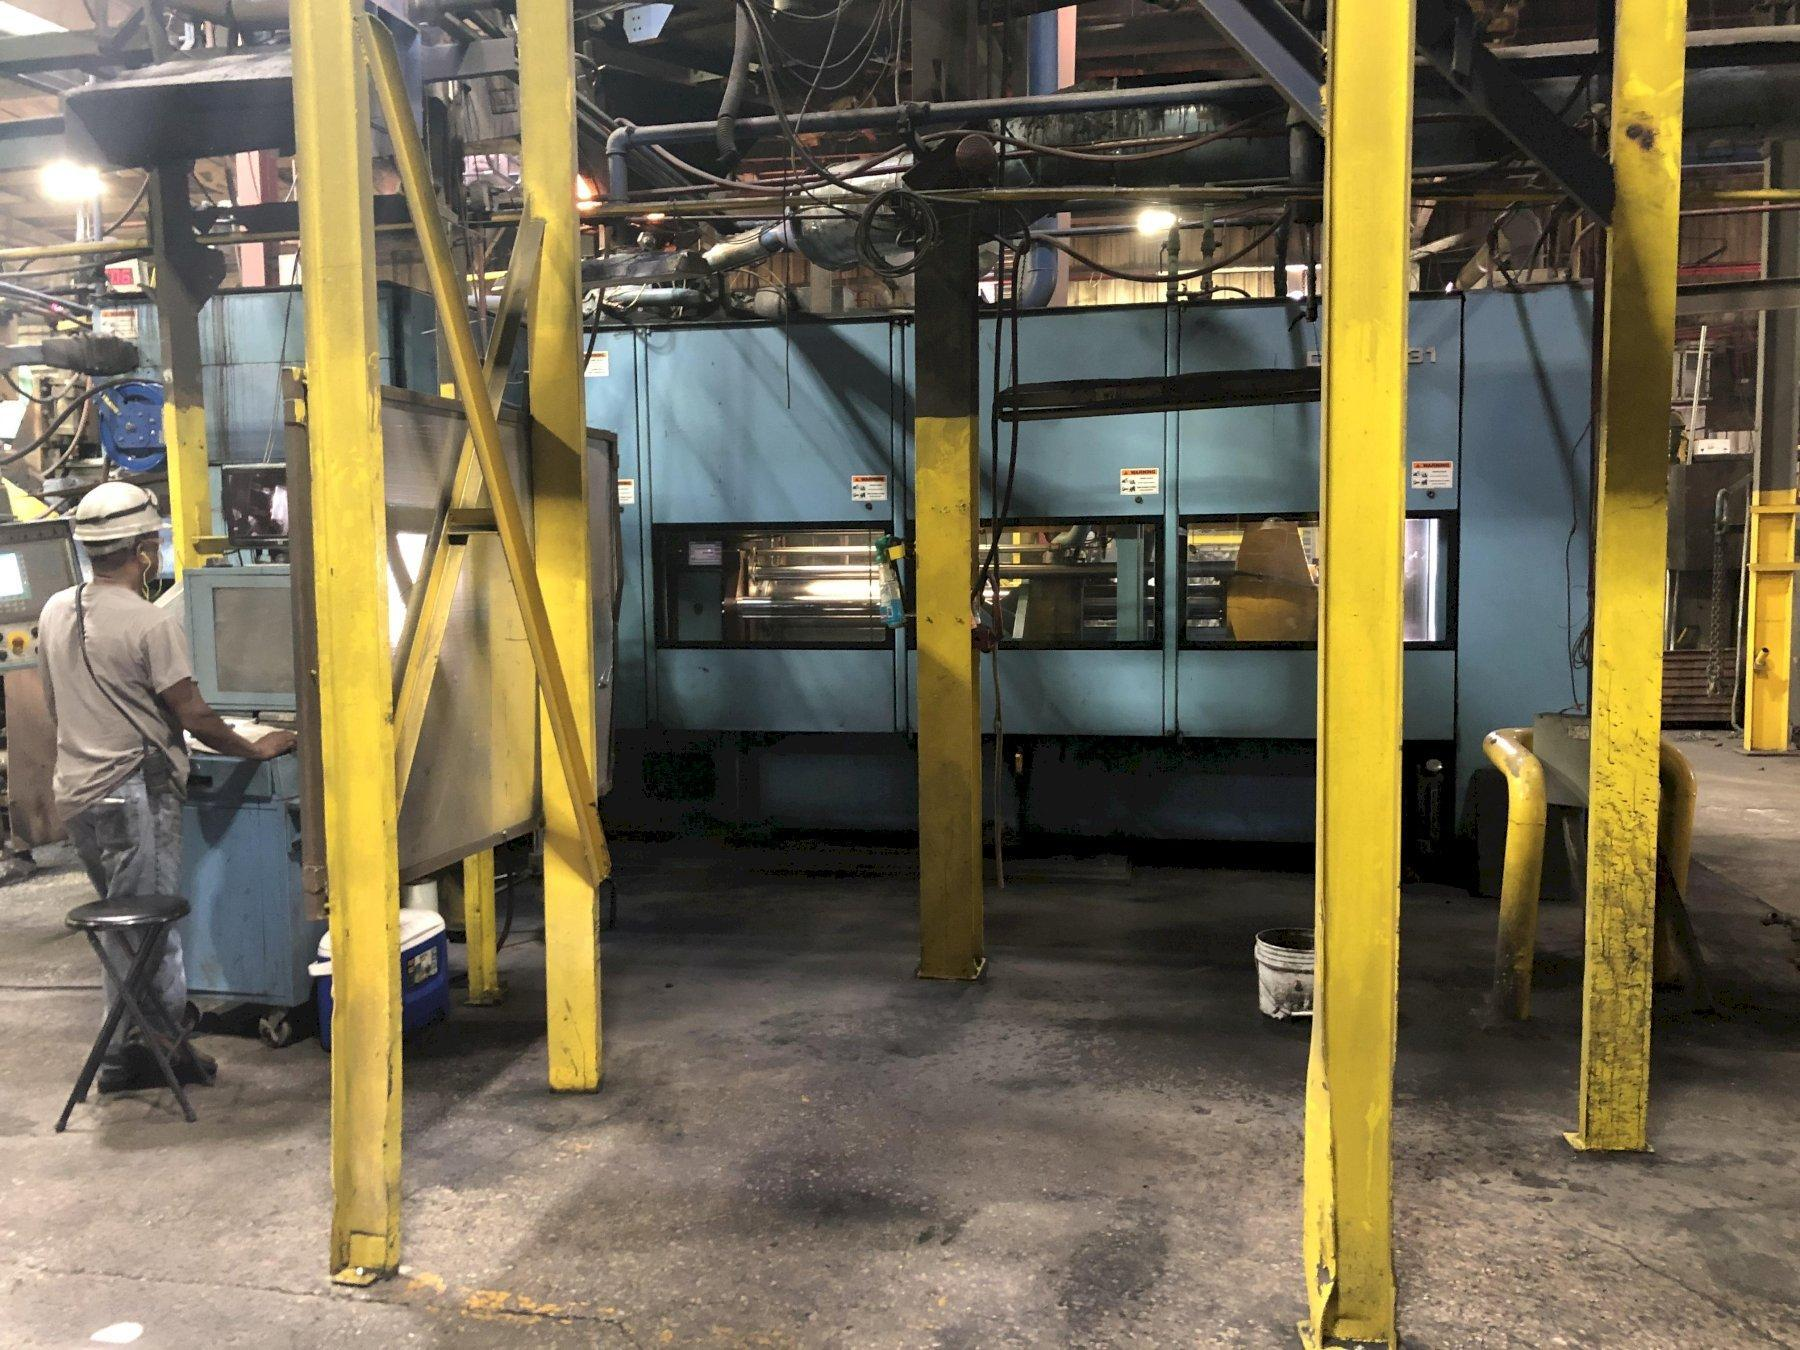 2012 DISAMATIC MODEL 131A (now d3a) AUTOMATIC MOLDING MACHINE S/N 140060 480 x 600 mm 150-395 mm cake. WITH CORE SETTER, CONTROLS, STOPPER ROD POURING SYSTEM WITH INOCULATION FEEDER, APPROX. MOLD COUNT 3,200,000, 57' AUTOMATIC MOLD CONVEYOR, 30' SYNCHRONIZED BELT CONVEYOR